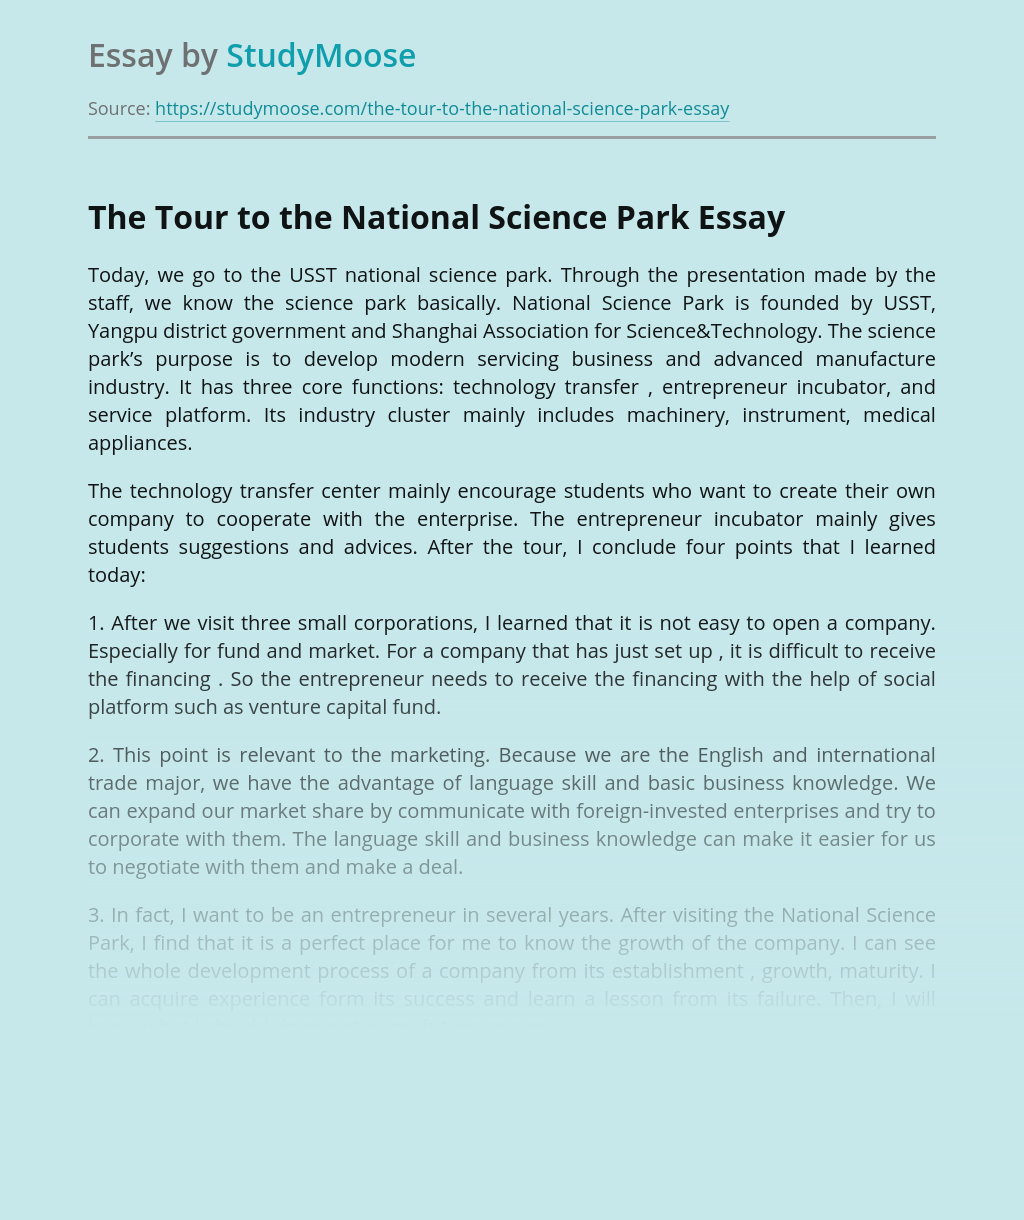 The Tour to the National Science Park